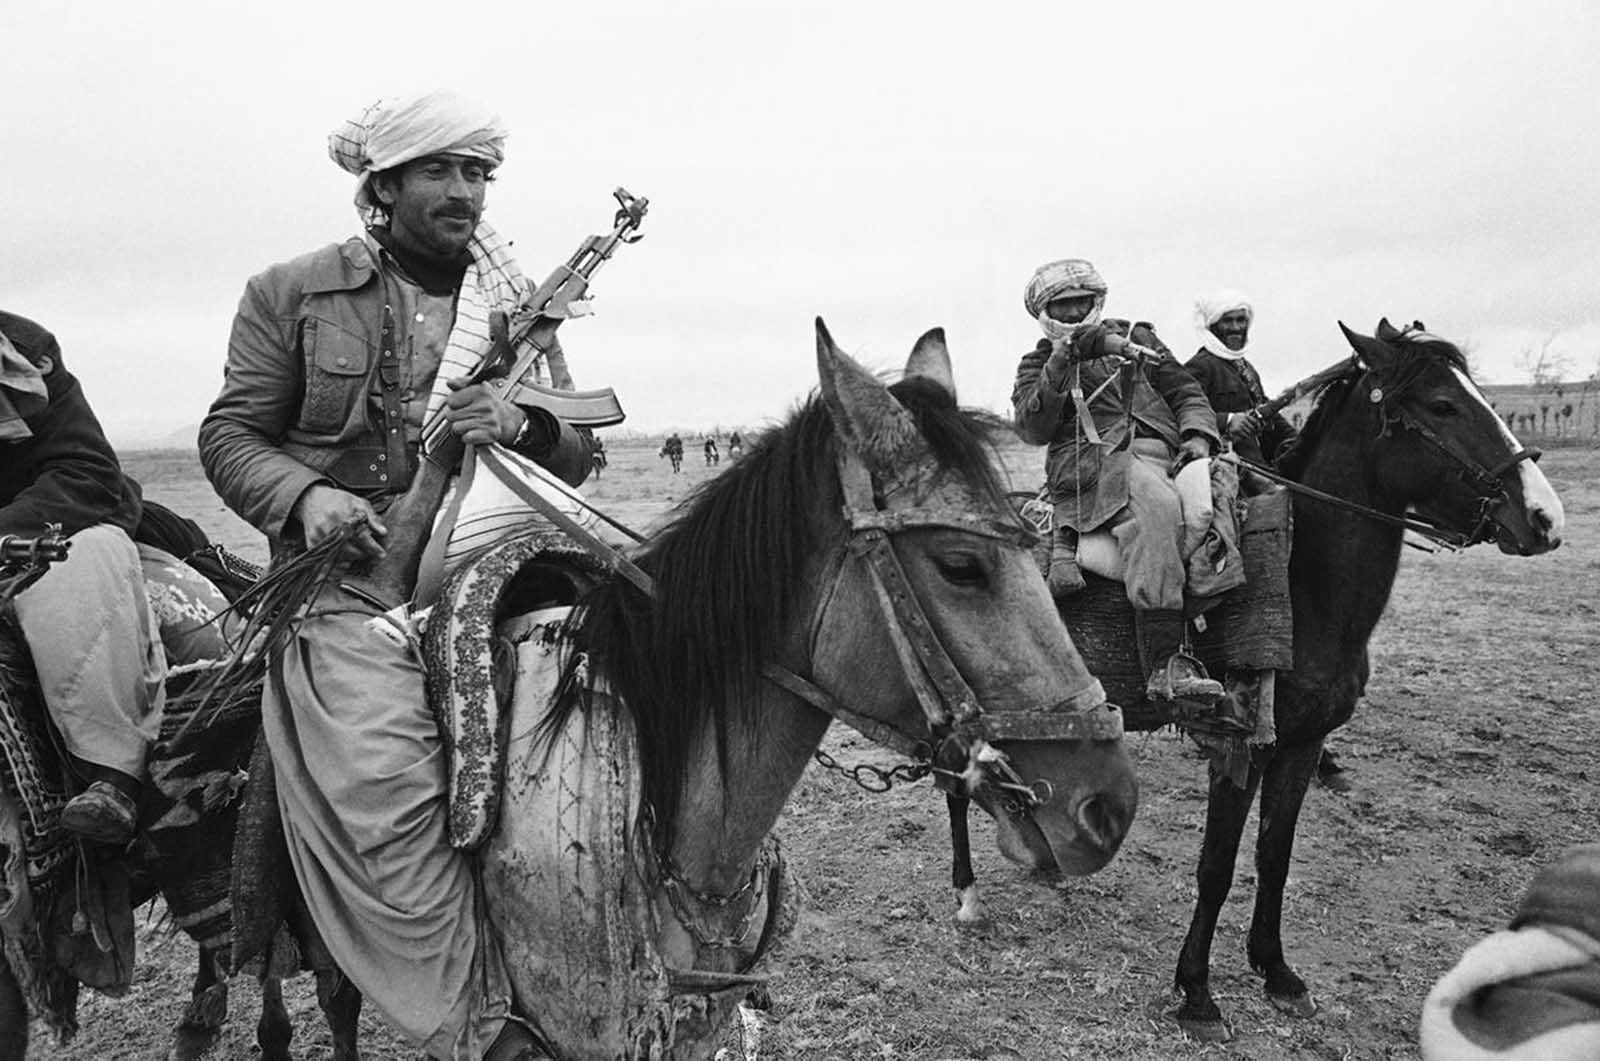 Three Muslim rebels, one armed with a Soviet-made AK-47 assault rifle, left, the others with older bolt-action rifles, pose on horseback during a rebel meeting at village near Herat, on February 15, 1980. Despite the presence of Soviet and Afghan government troops in the area, the rebels patrolled the mountain ranges along the Afghan-Iran border.